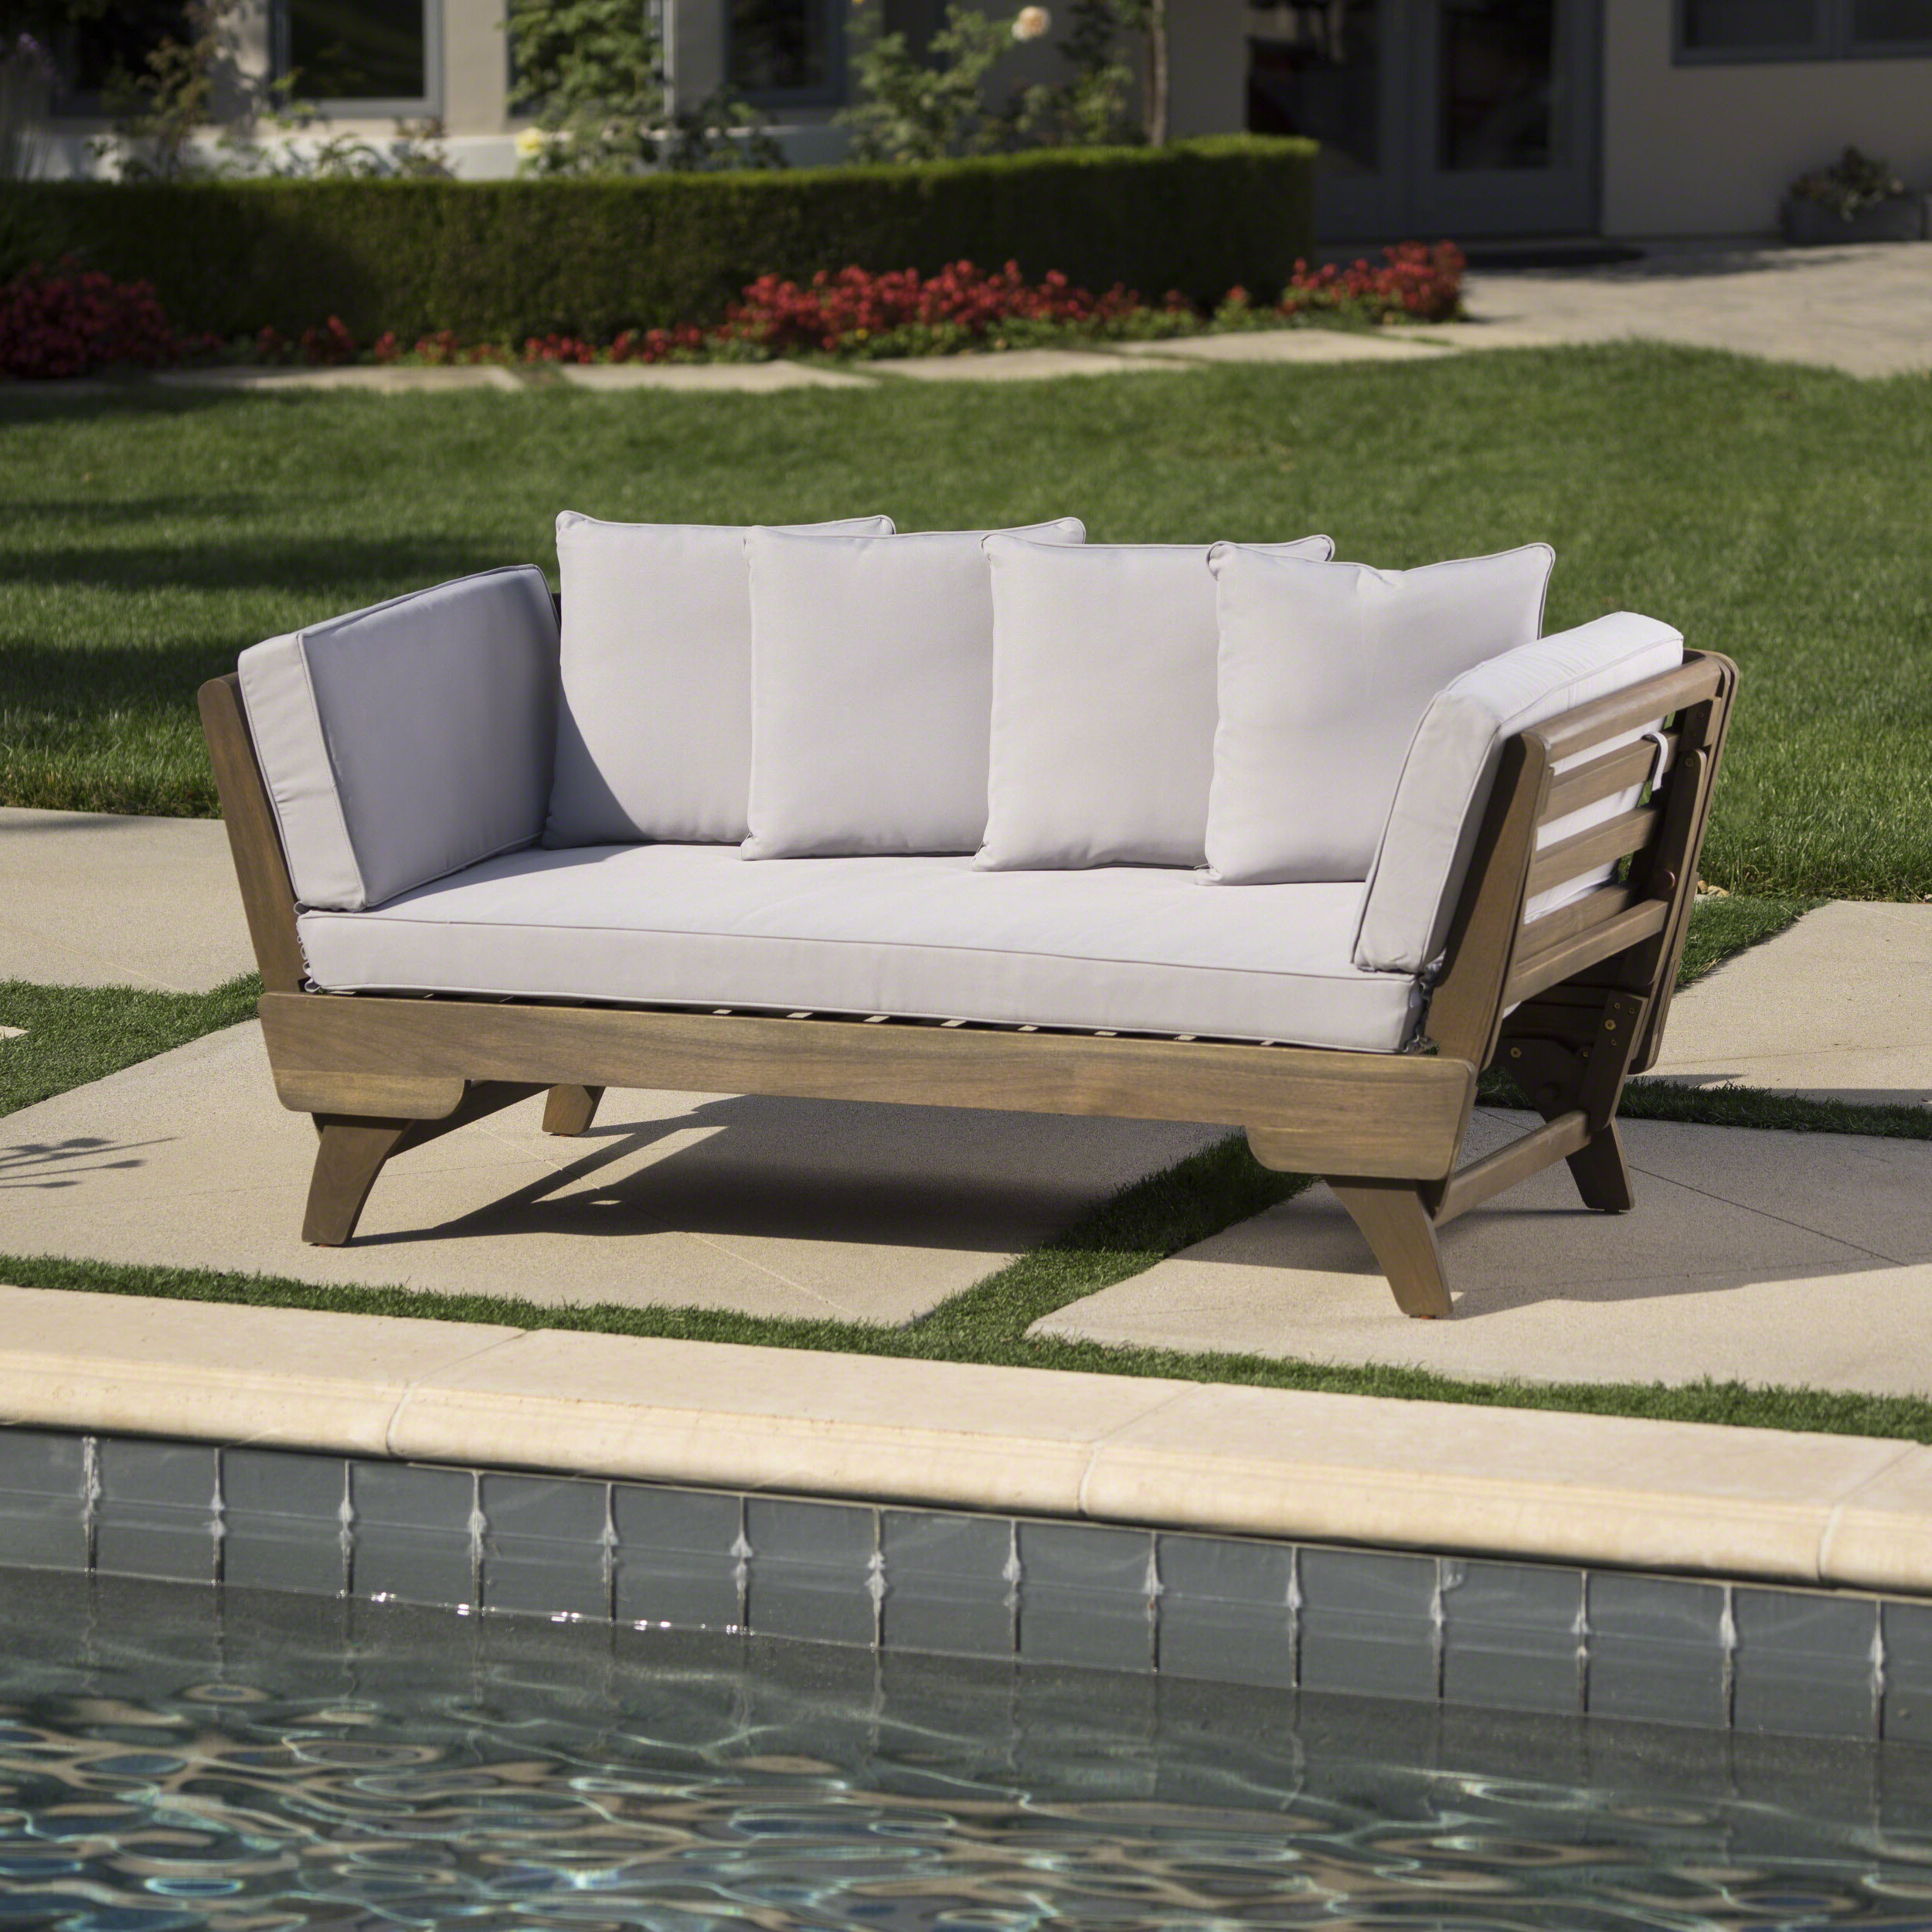 Well Known Ellanti Patio Daybed With Cushions Pertaining To Ellanti Patio Daybeds With Cushions (View 2 of 25)